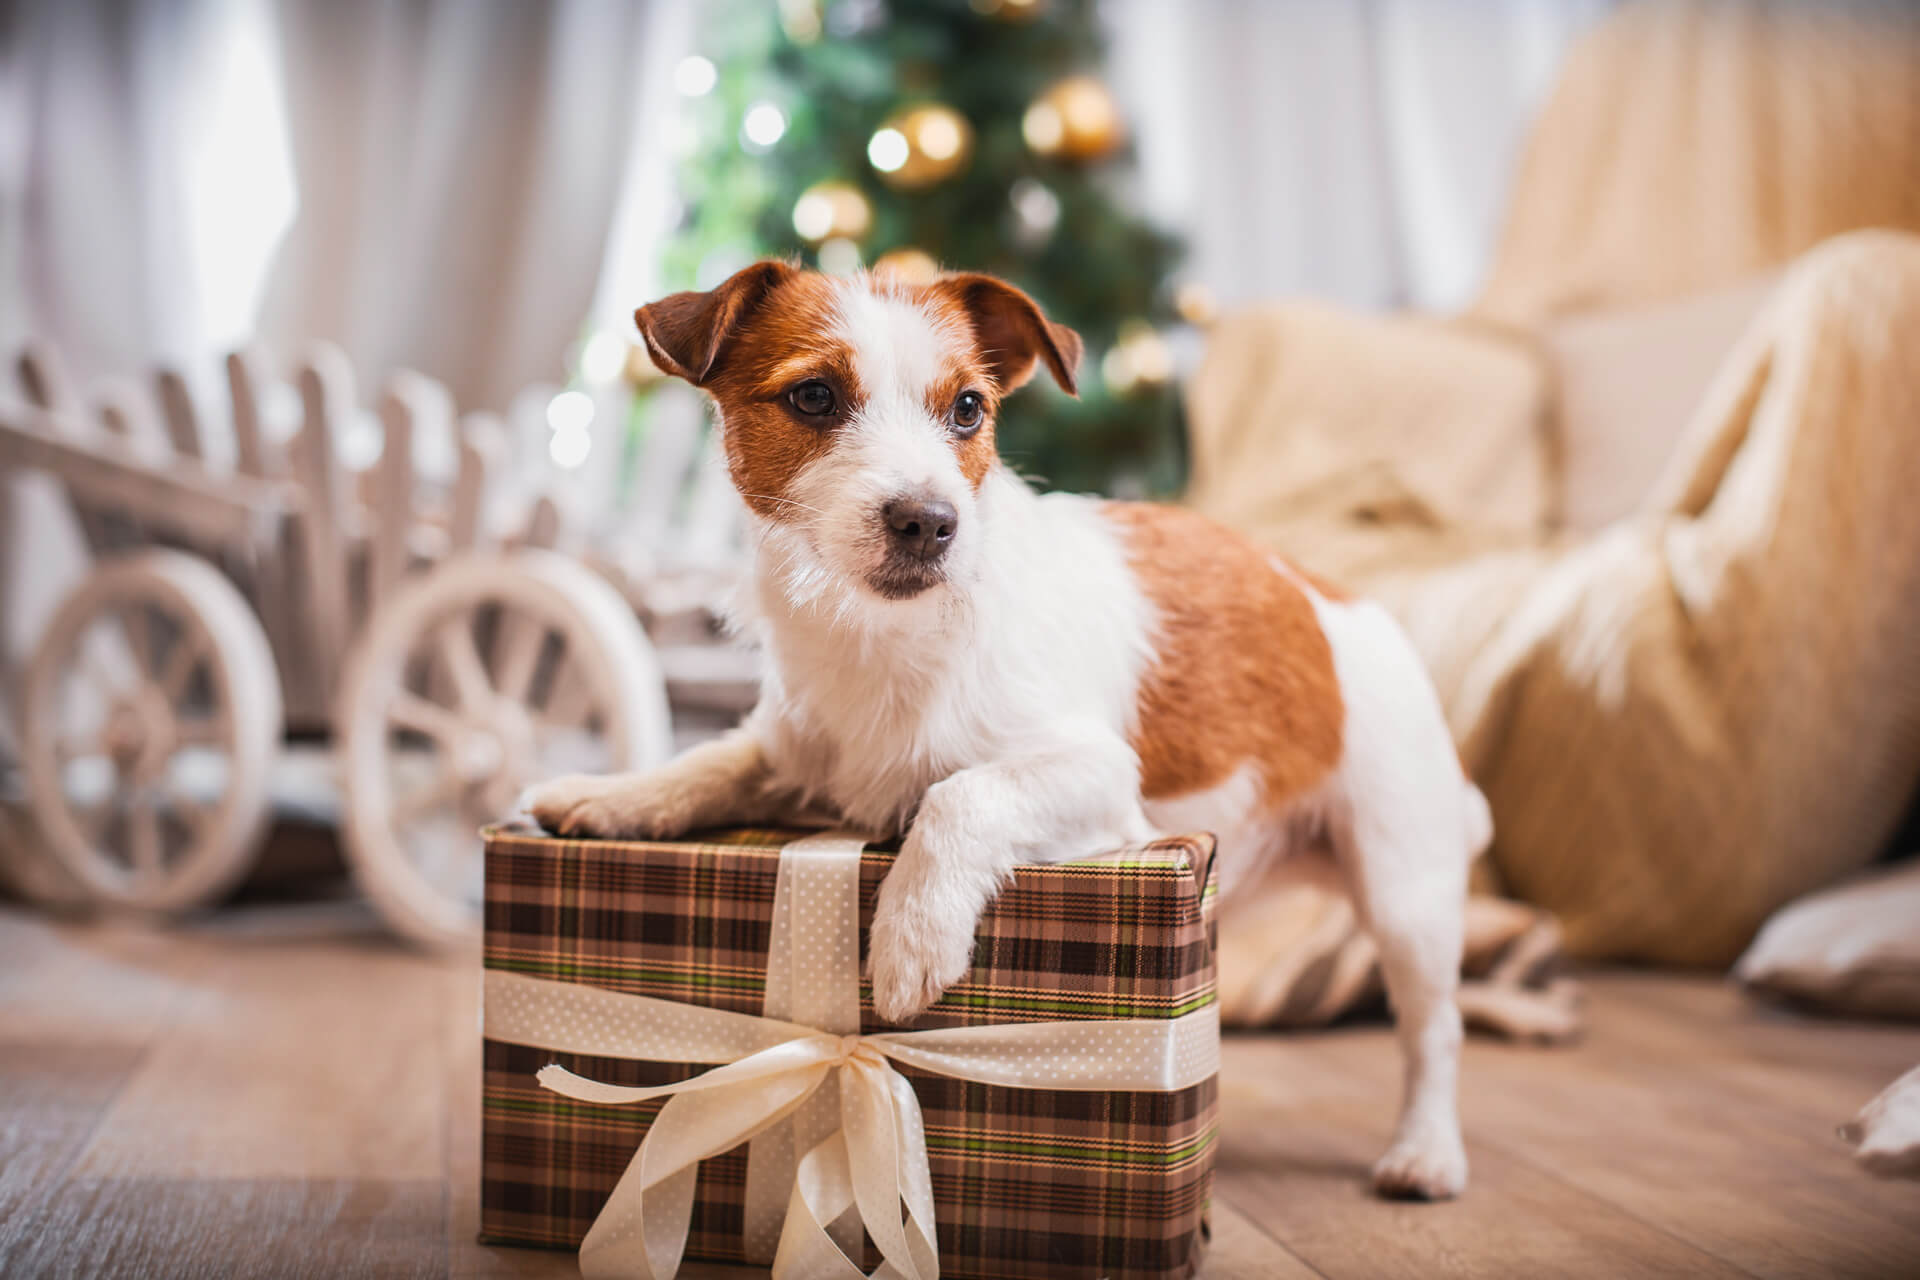 The 7 Best Gifts for Dog Lovers